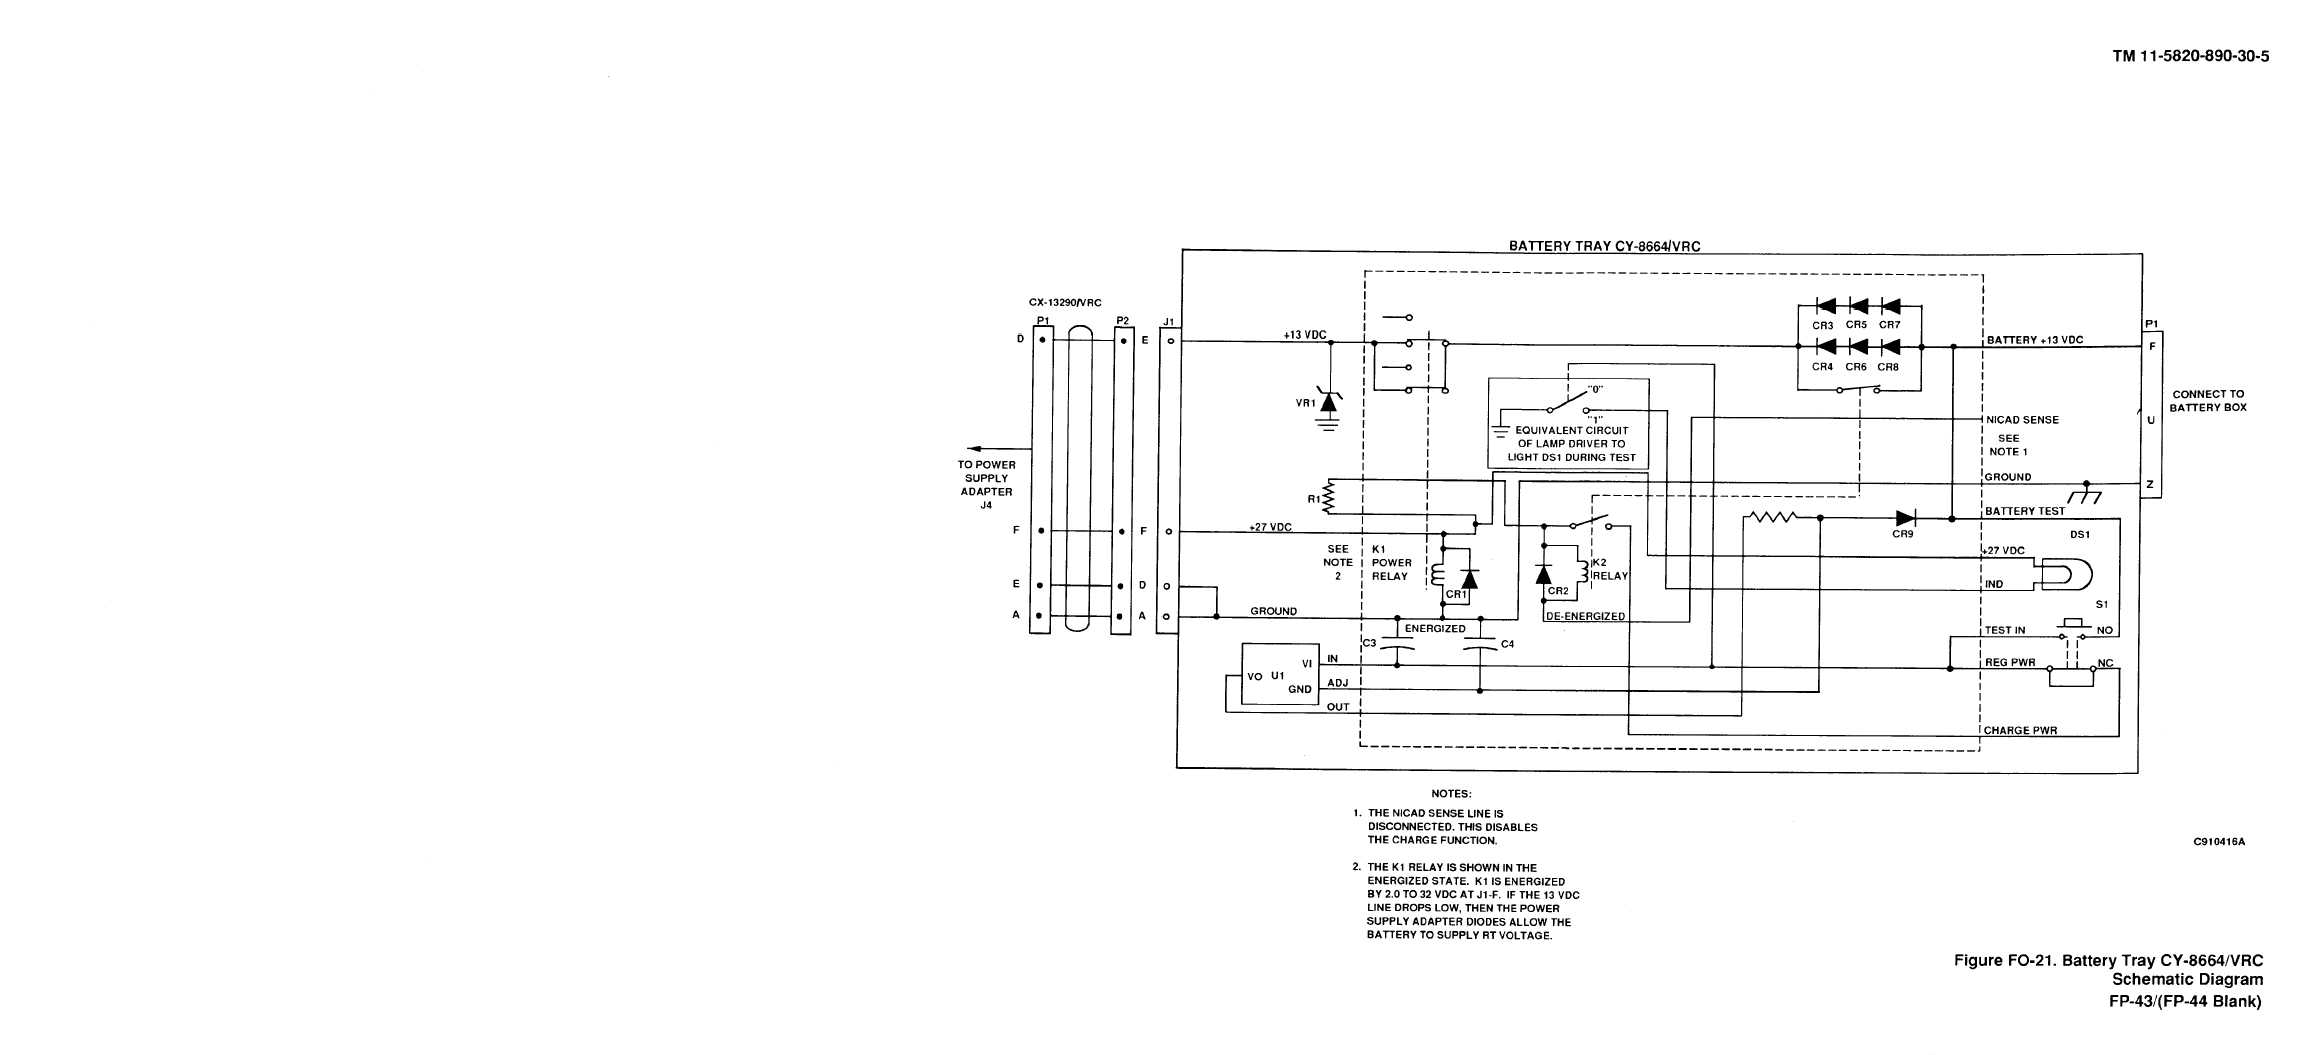 Figure Fo 21 Battery Tray Cy Vrc Schematic Diagram